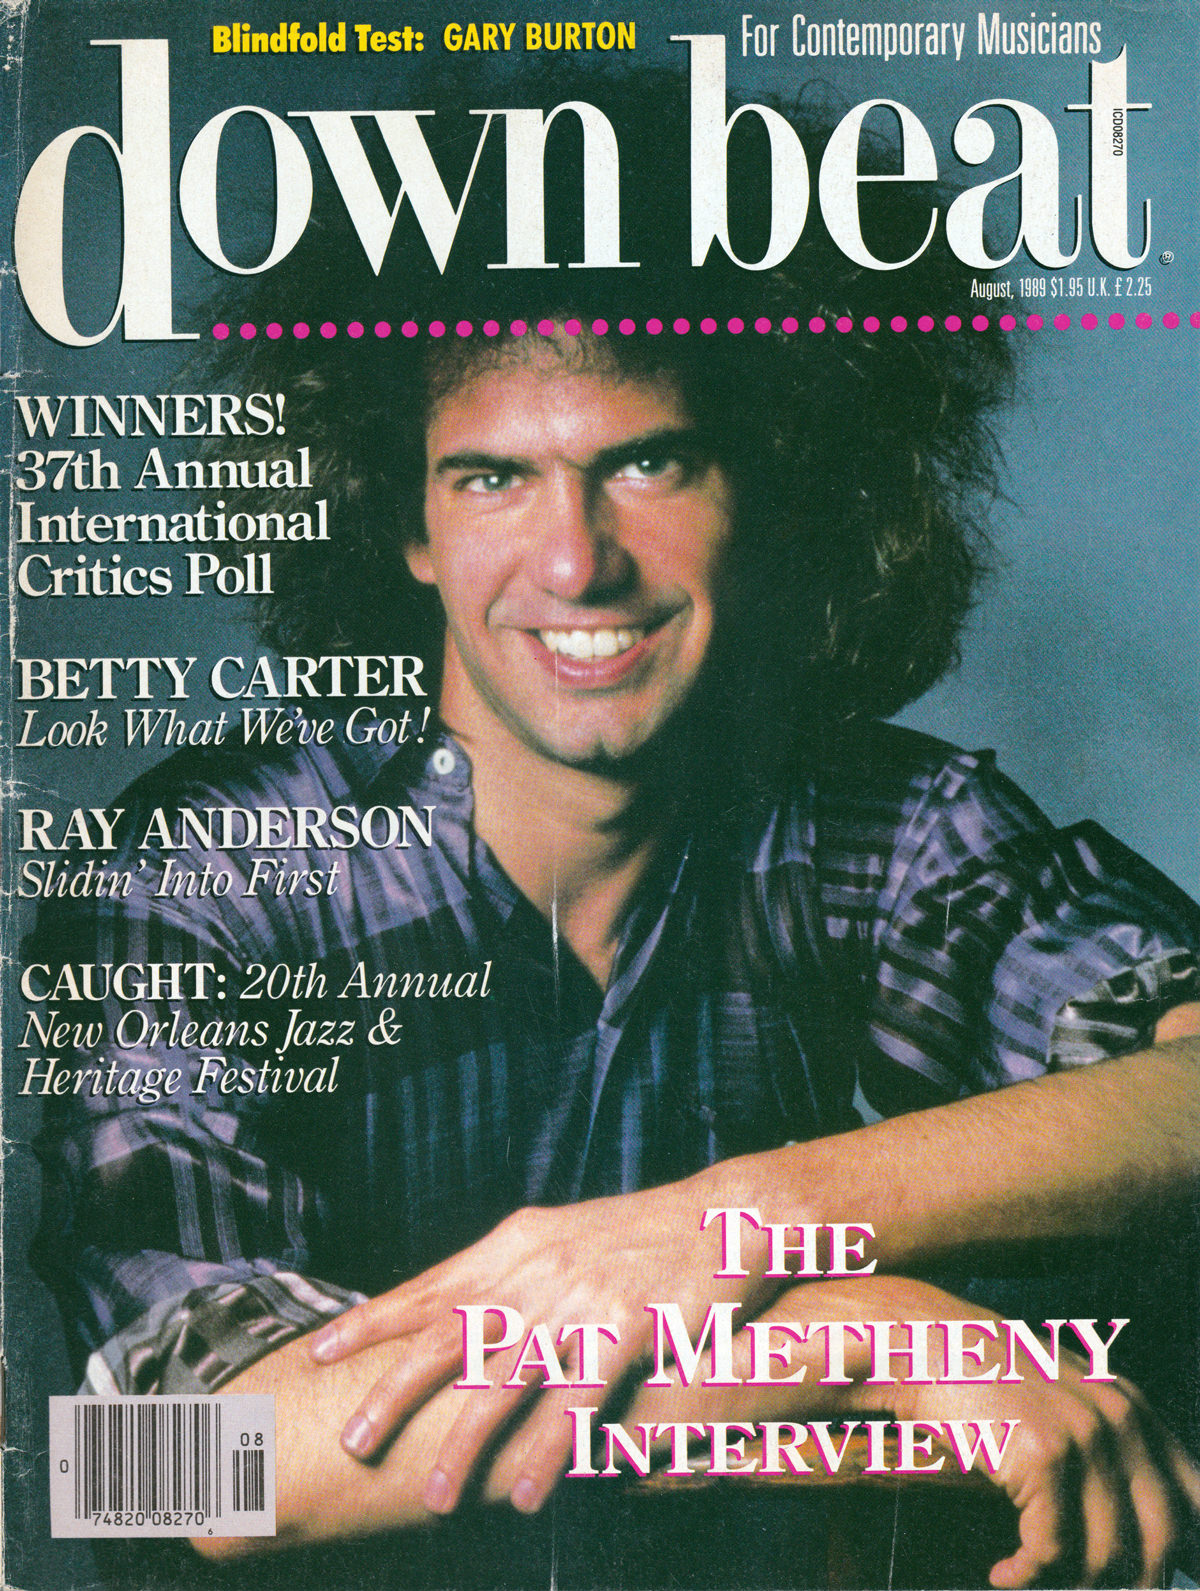 Downbeat Magazine August 1989